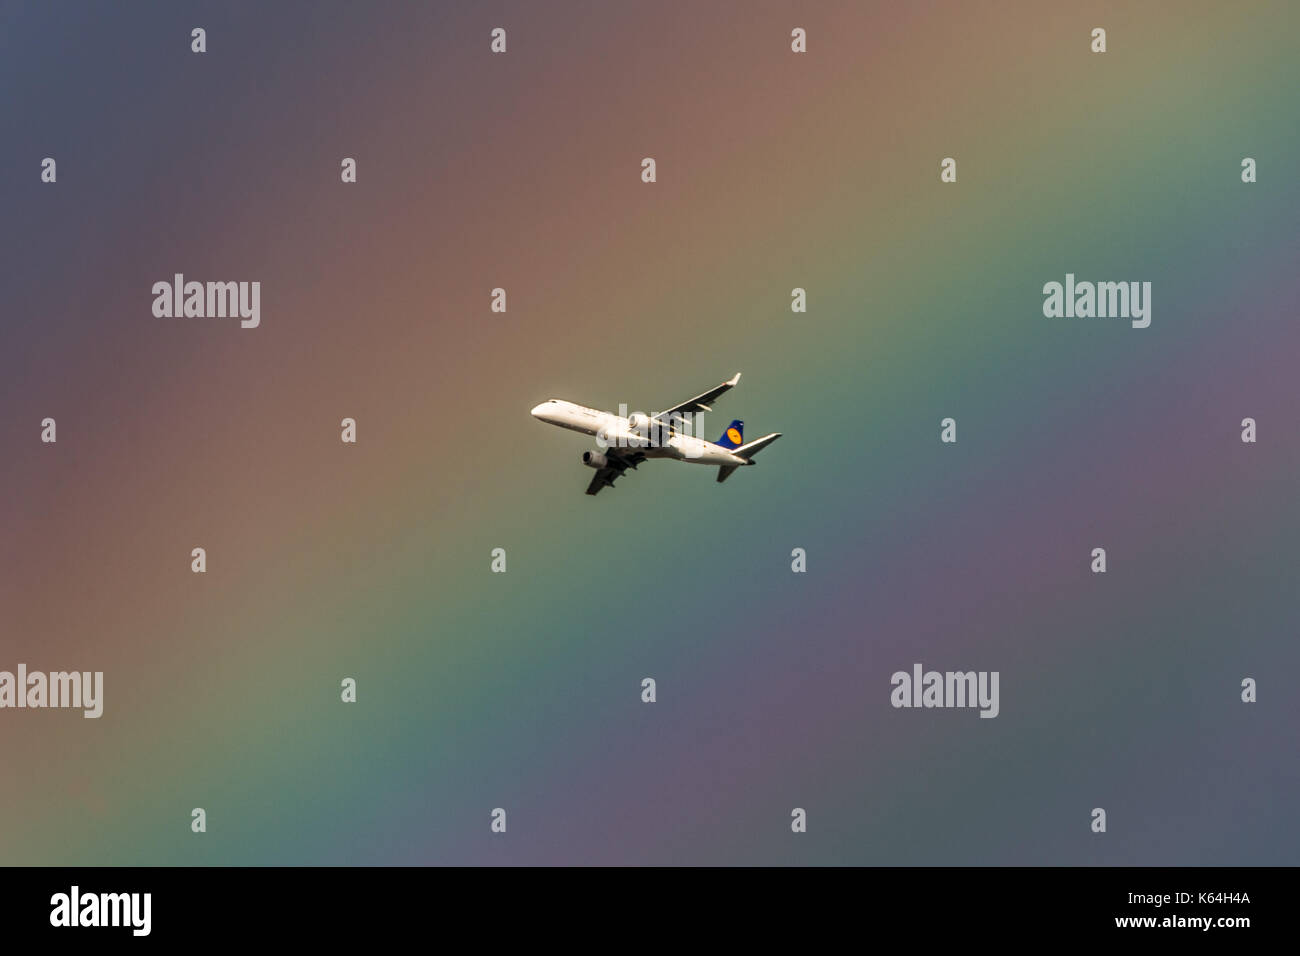 London, UK. 11th Sep, 2017. UK Weather: A German Lufthansa passenger jet leaving City Airport passes through a massive colourful rainbow over the city. Credit: Guy Corbishley/Alamy Live News - Stock Image